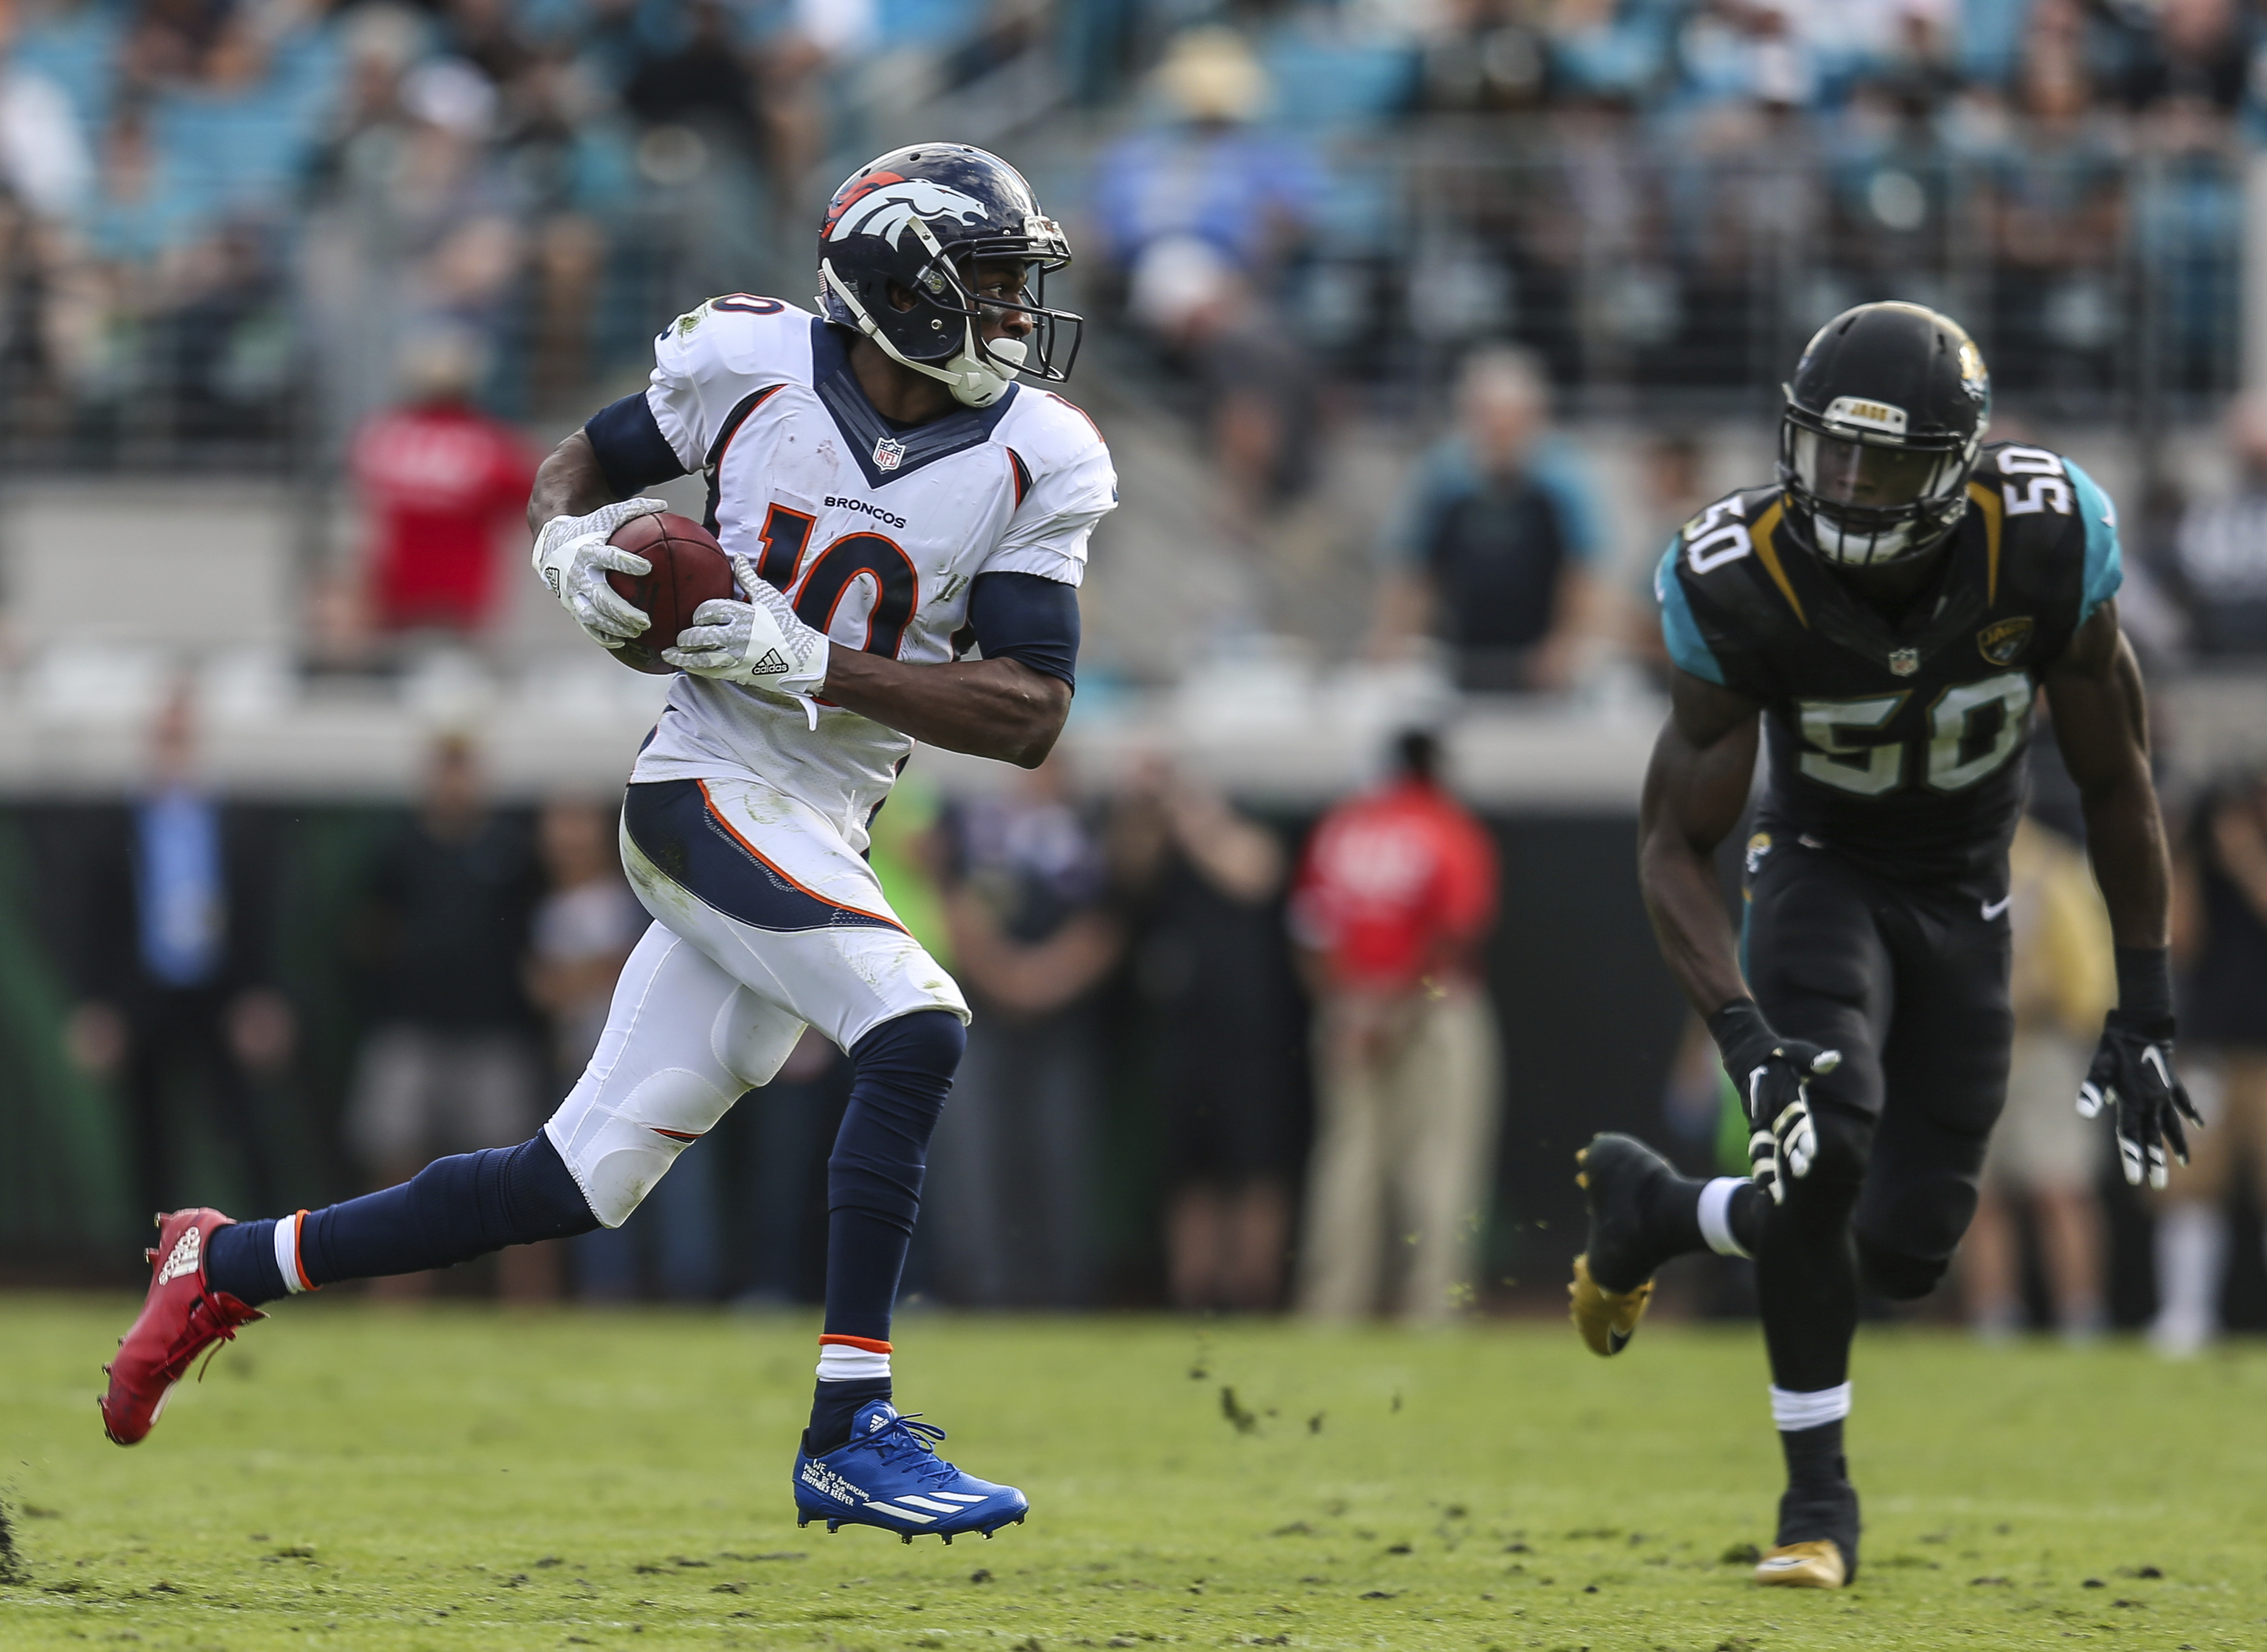 FILE - In this Dec. 4, 2016, file photo, Denver Broncos wide receiver Emmanuel Sanders (10) runs the ball defended by Jacksonville Jaguars outside linebacker Telvin Smith (50) during the second half of an NFL football game, in Jacksonville, Fla. Gary Kubi